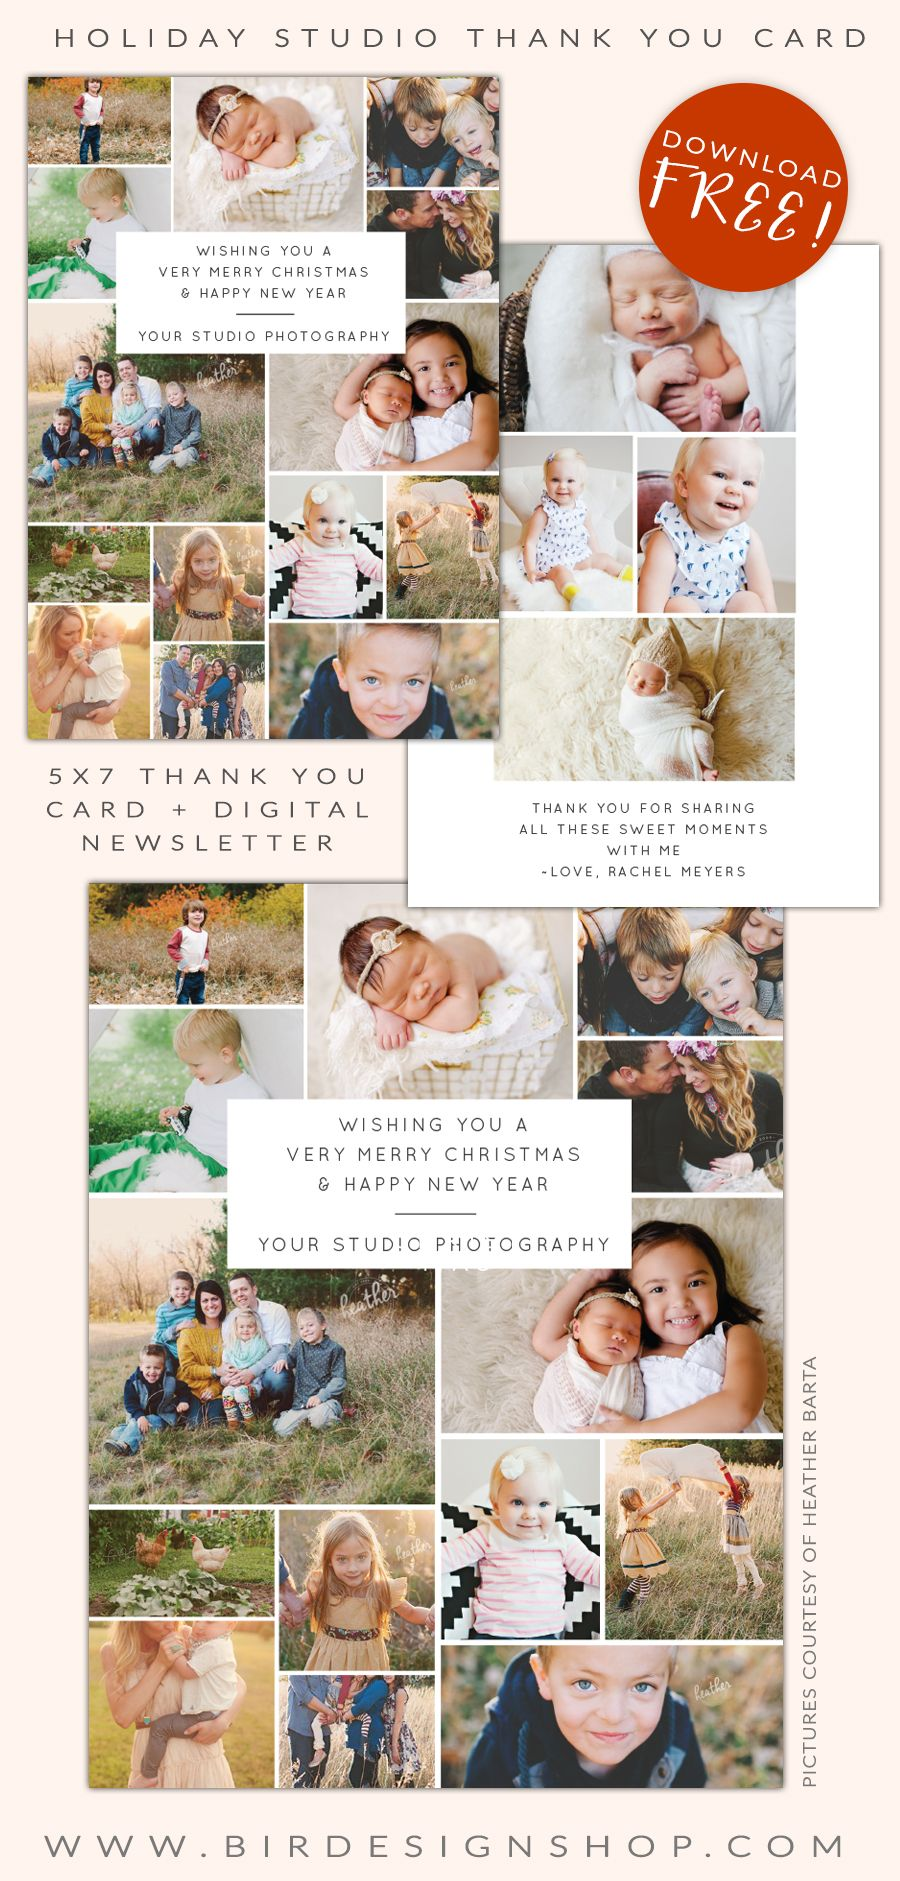 free photography studio thank you card and newsletter photoshop templates